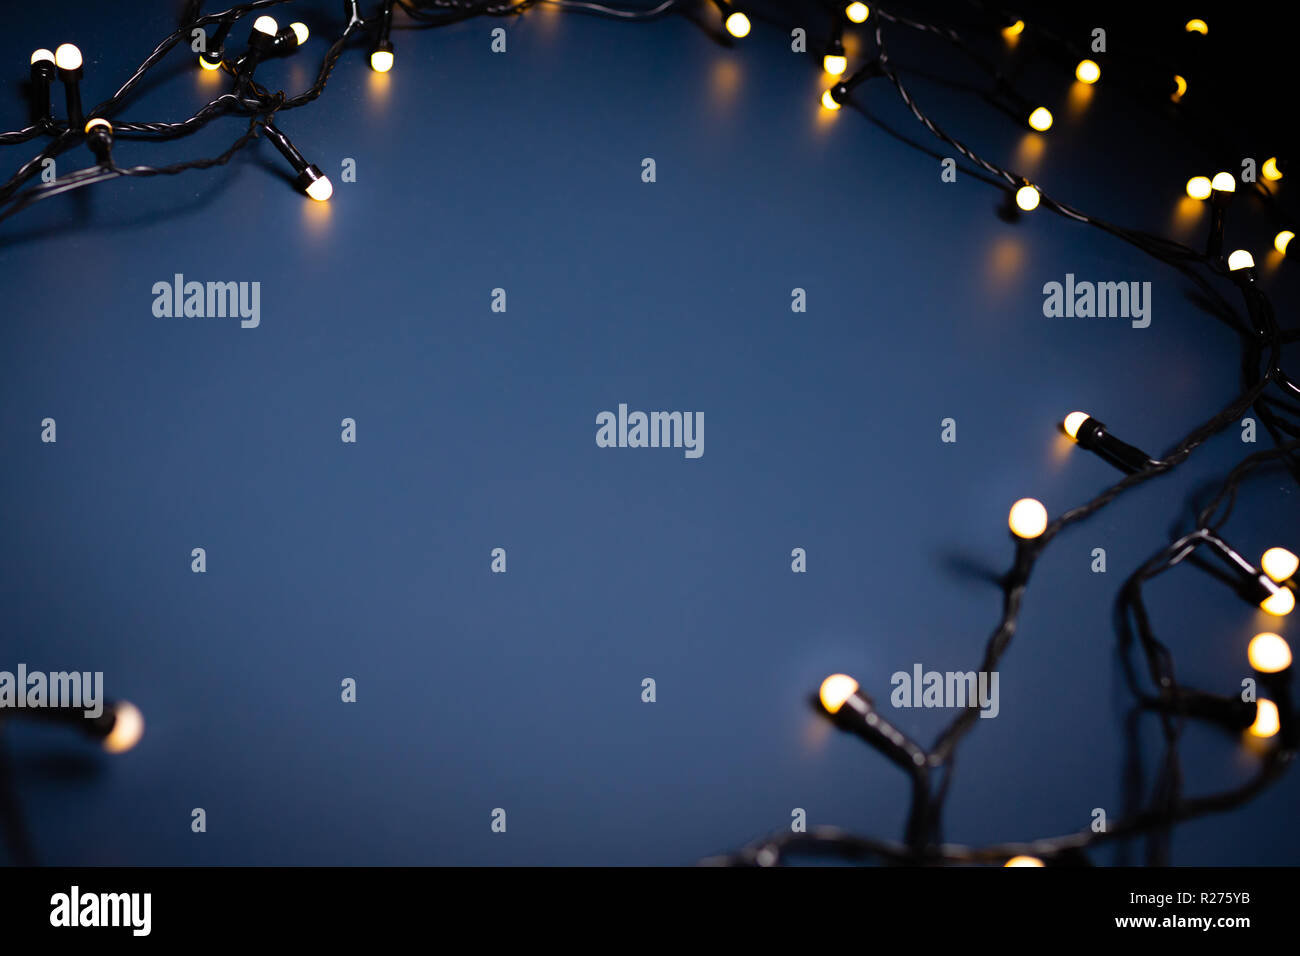 Blue background surrounded by decorative lights. Christmas theme. - Stock Image